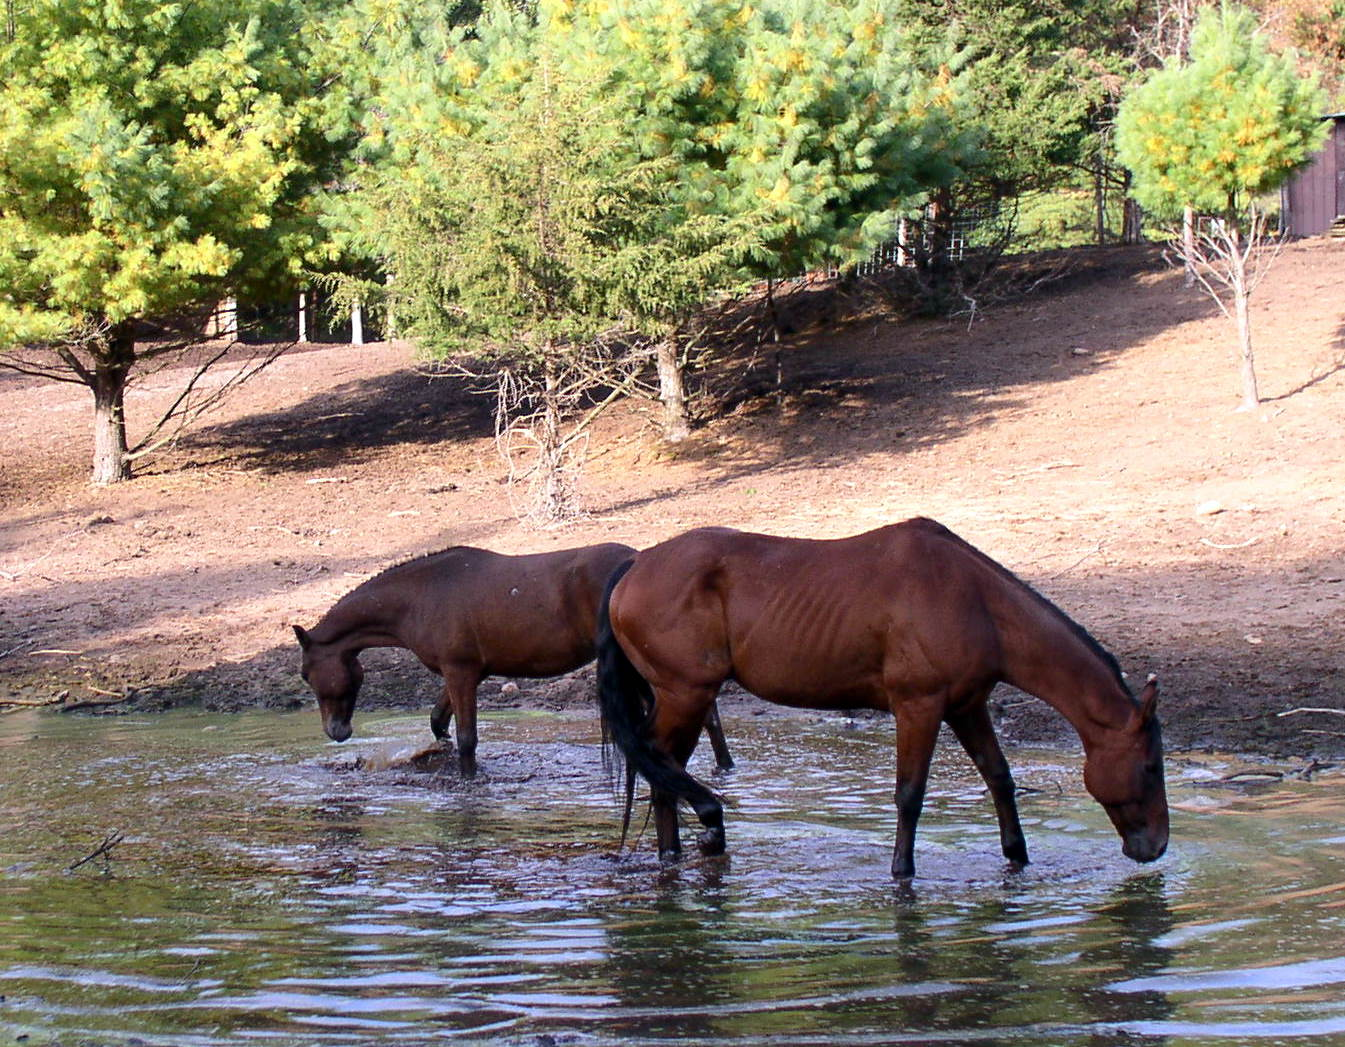 Rocko and Spirit in the water